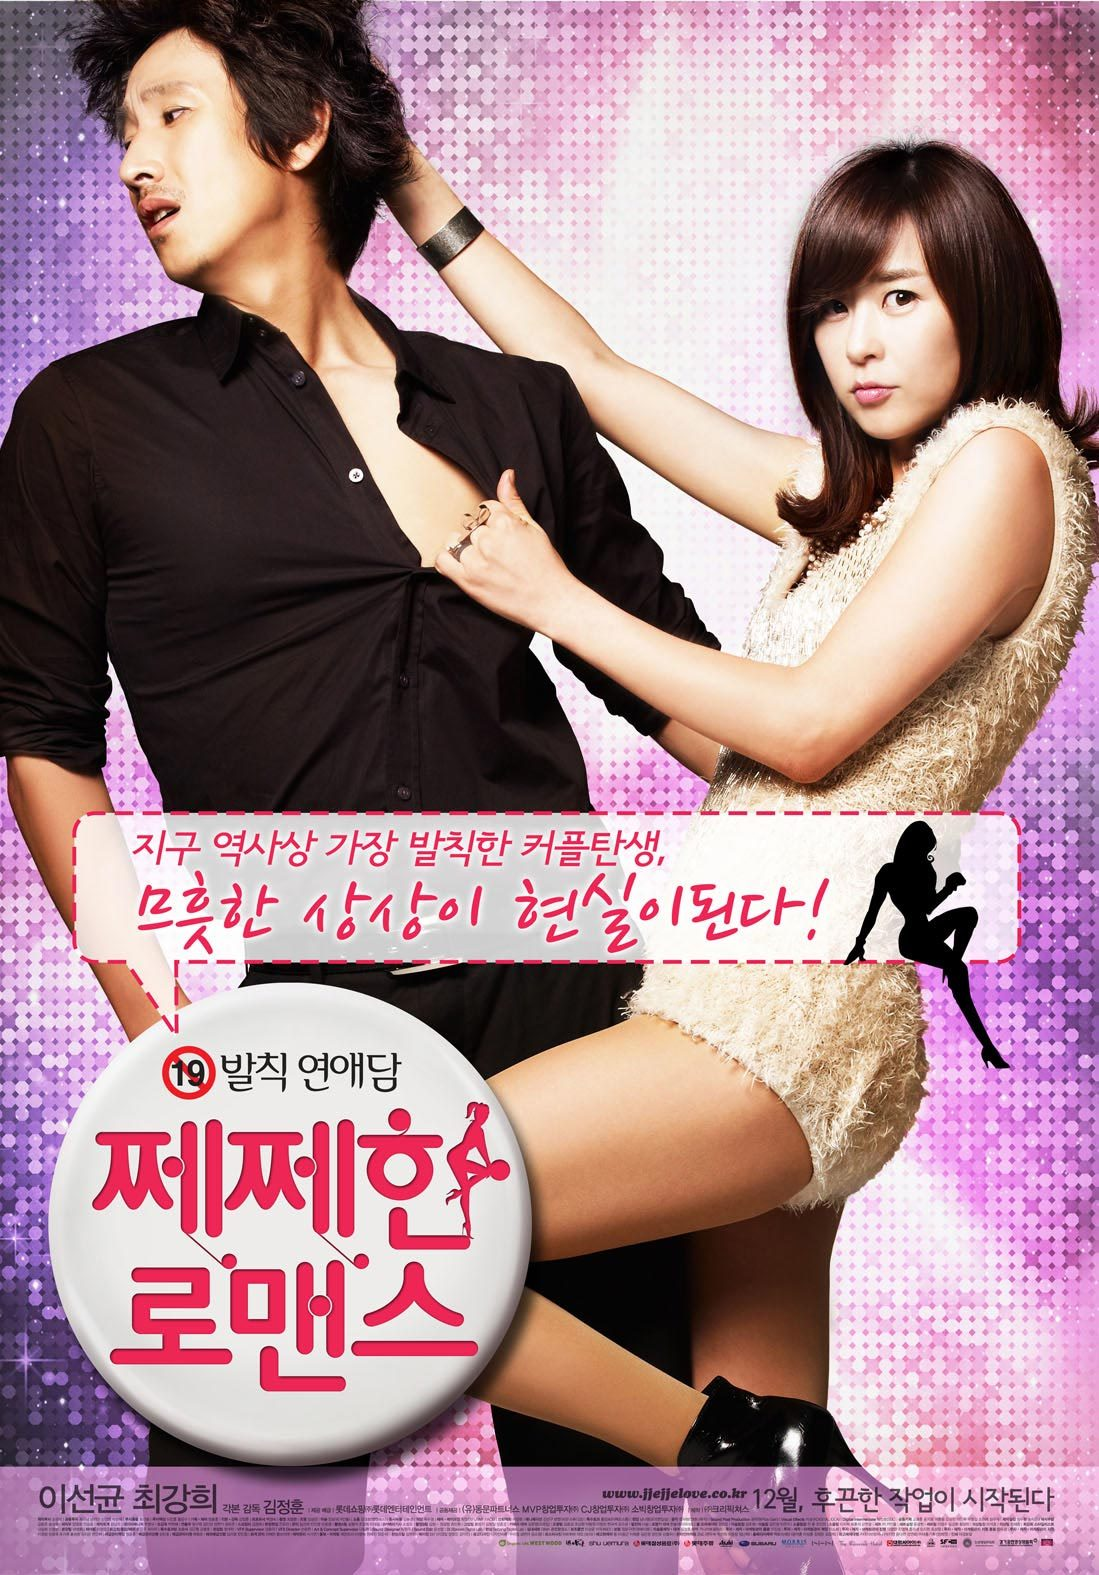 Korean sex comedy movies